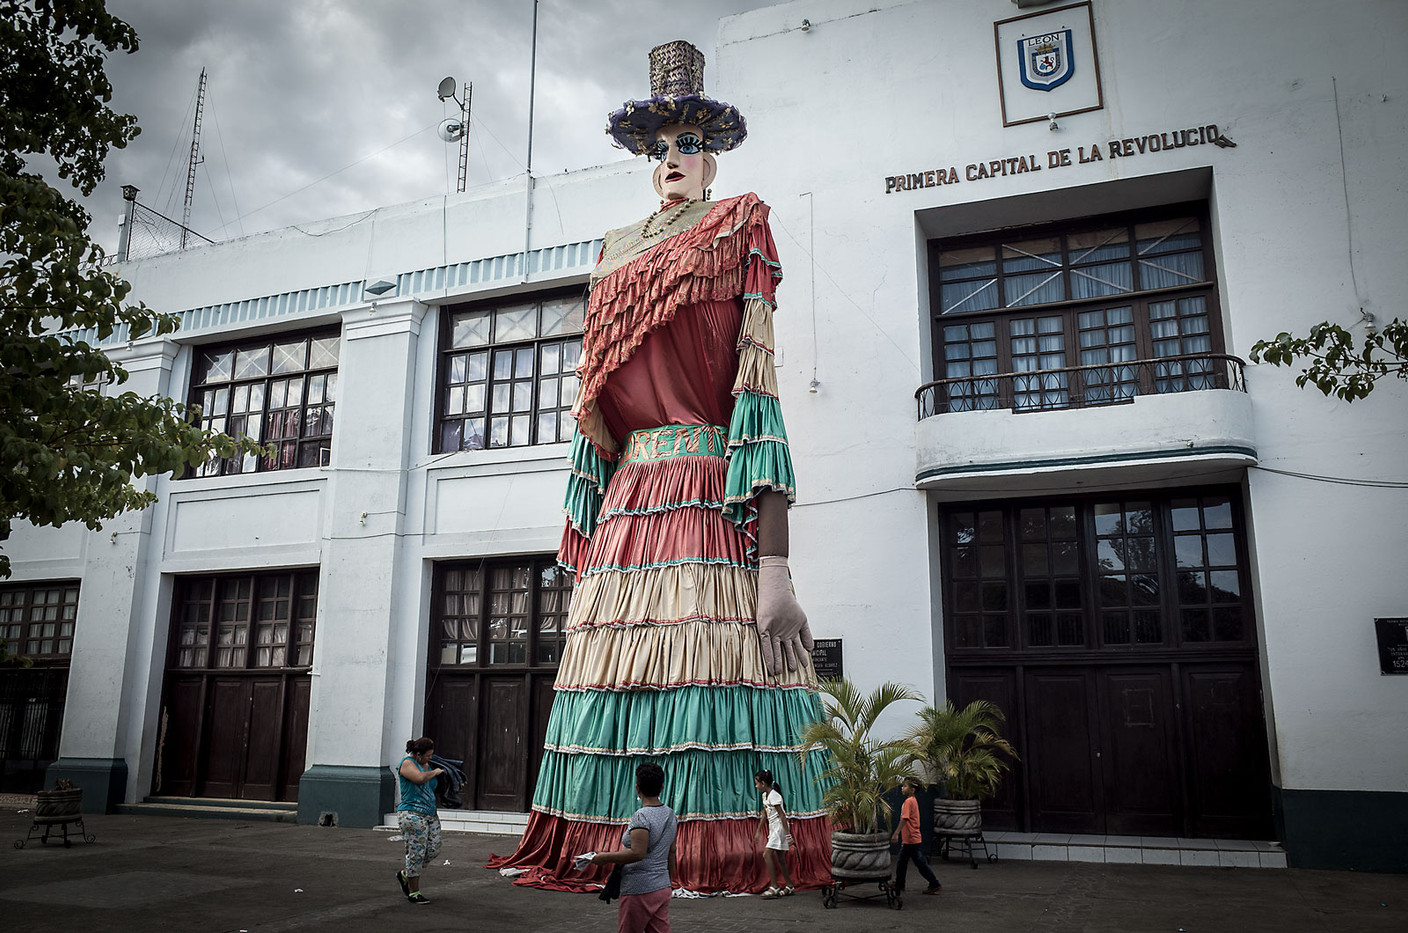 A statue of La Gigantona sits in the square in León, Nicaragua. La Gigantona is part of traditional Nicaraguan celebrations and pejoratively depicts a colonial Spanish women: tall, pale, and haughty. She is accompanied by El Enano Cabezon (The Big-Headed Dwarf), a short indigenous man, his oversized head representing his superior intelligence.